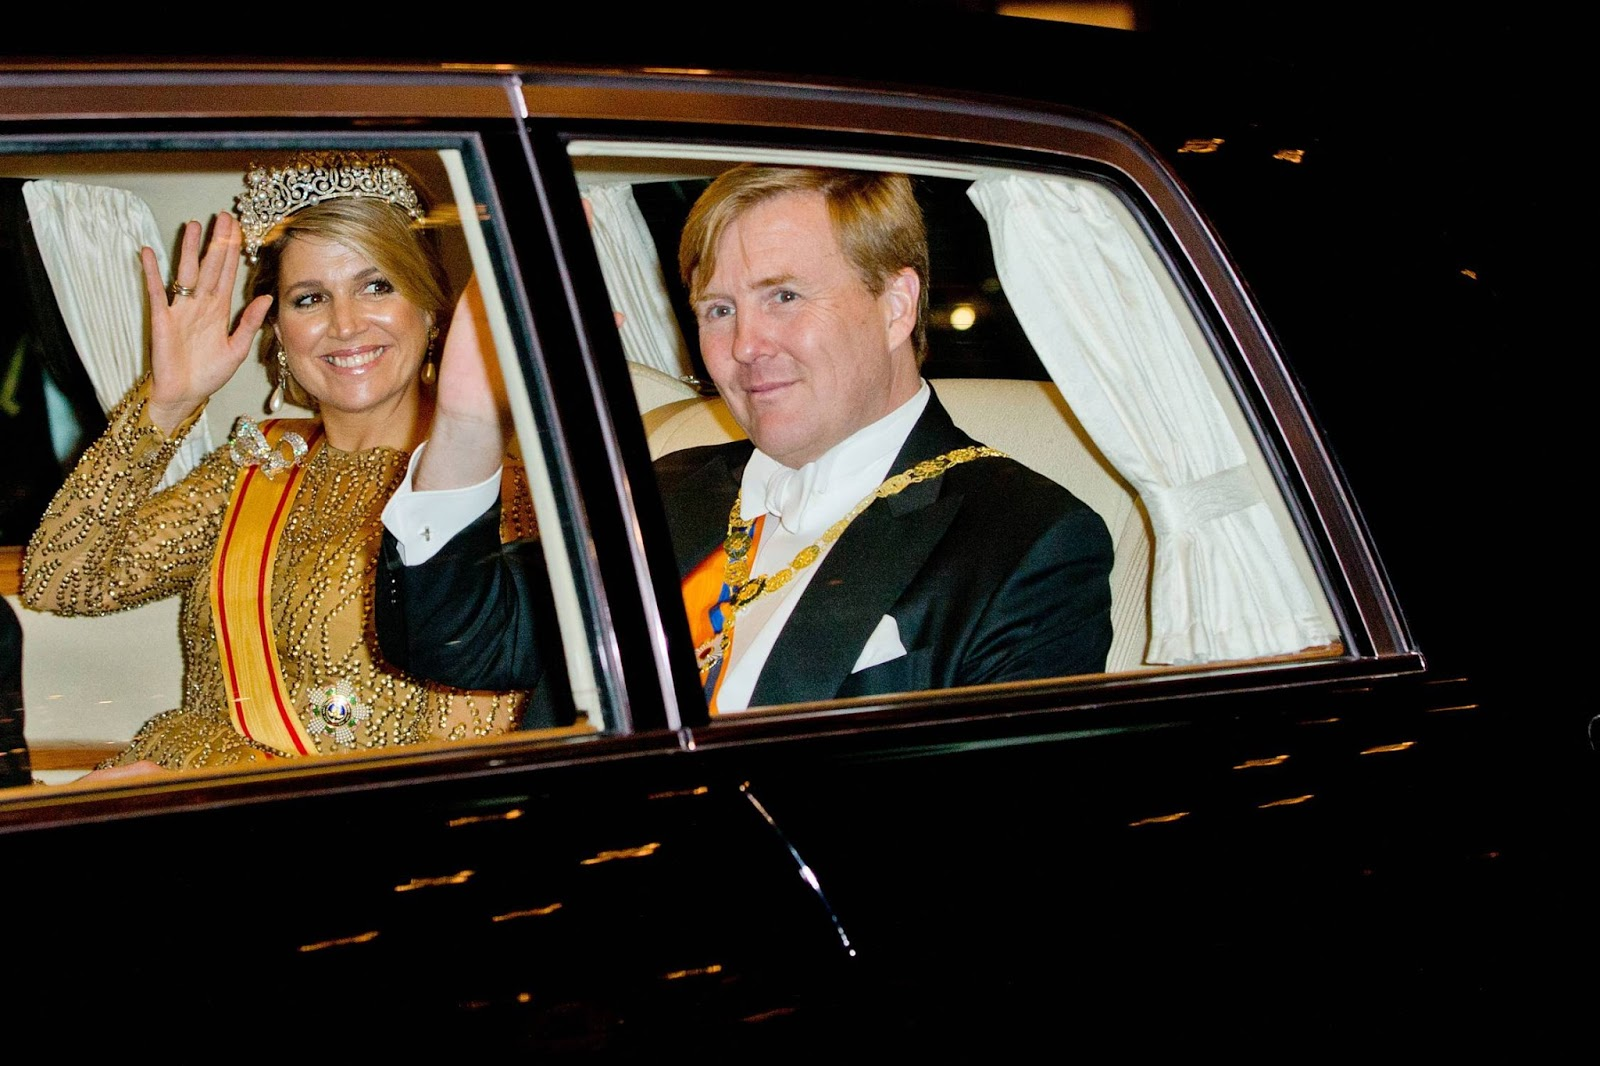 visit Japan - King Willem-Alexander and Queen Maxima